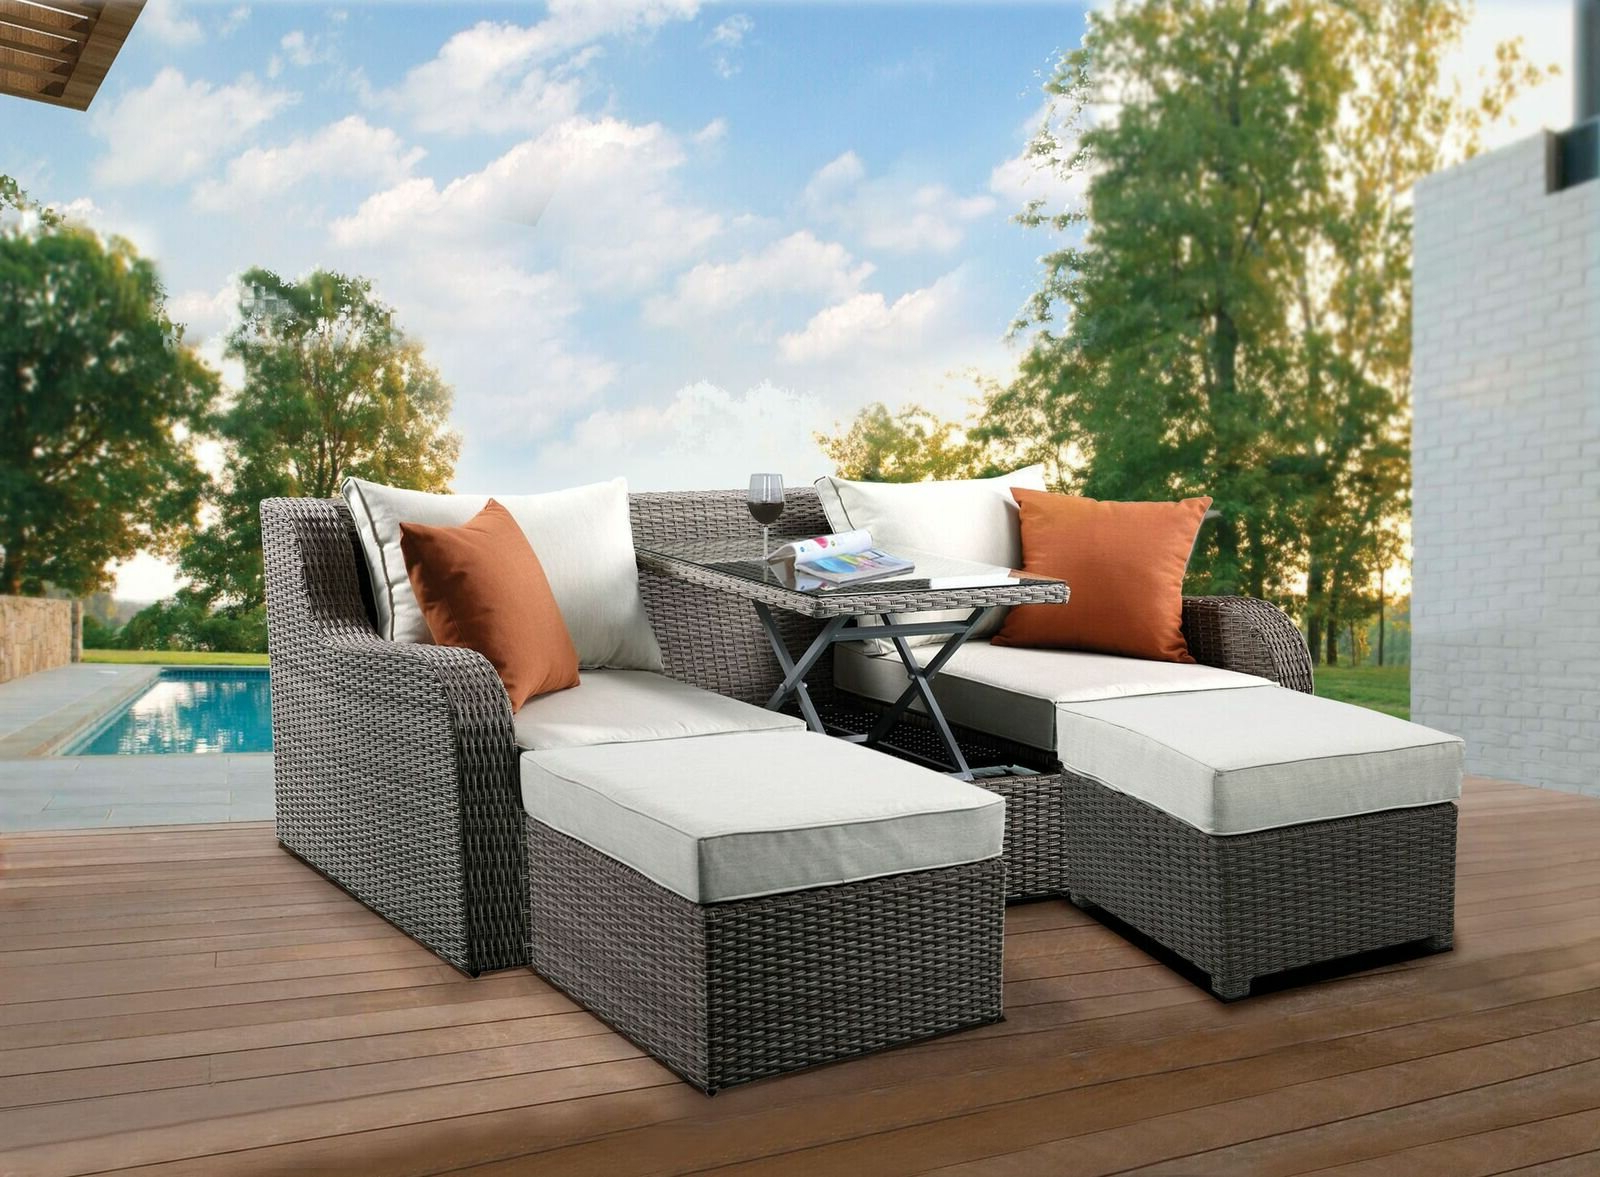 Preferred Baca Patio Sofas With Cushions Pertaining To Platt Patio Sofa With Cushions (Gallery 13 of 25)